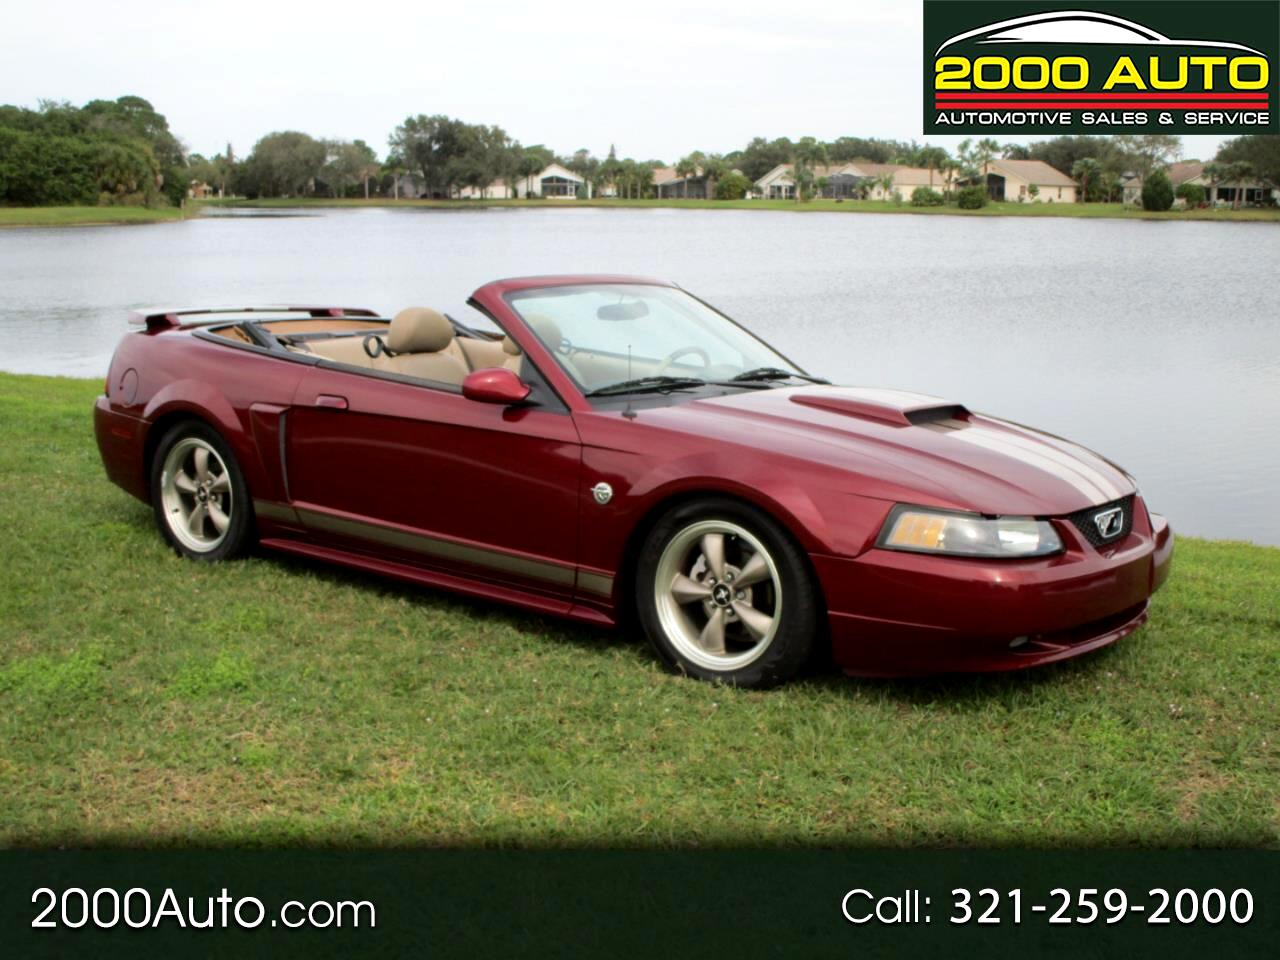 Ford Mustang GT Deluxe Convertible 2004